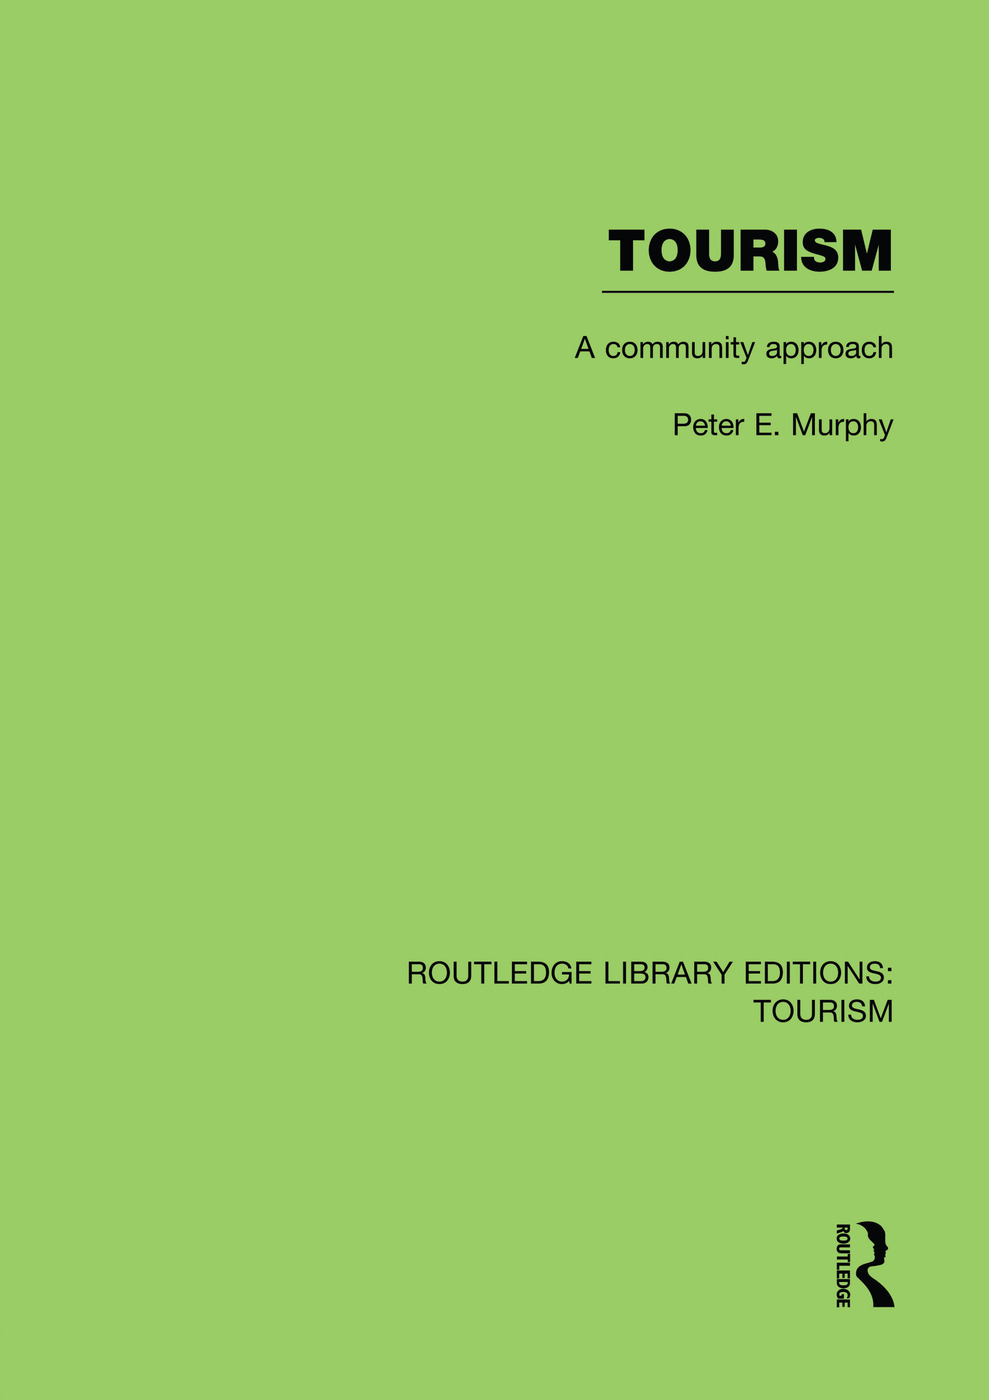 Tourism: A Community Approach (RLE Tourism) book cover